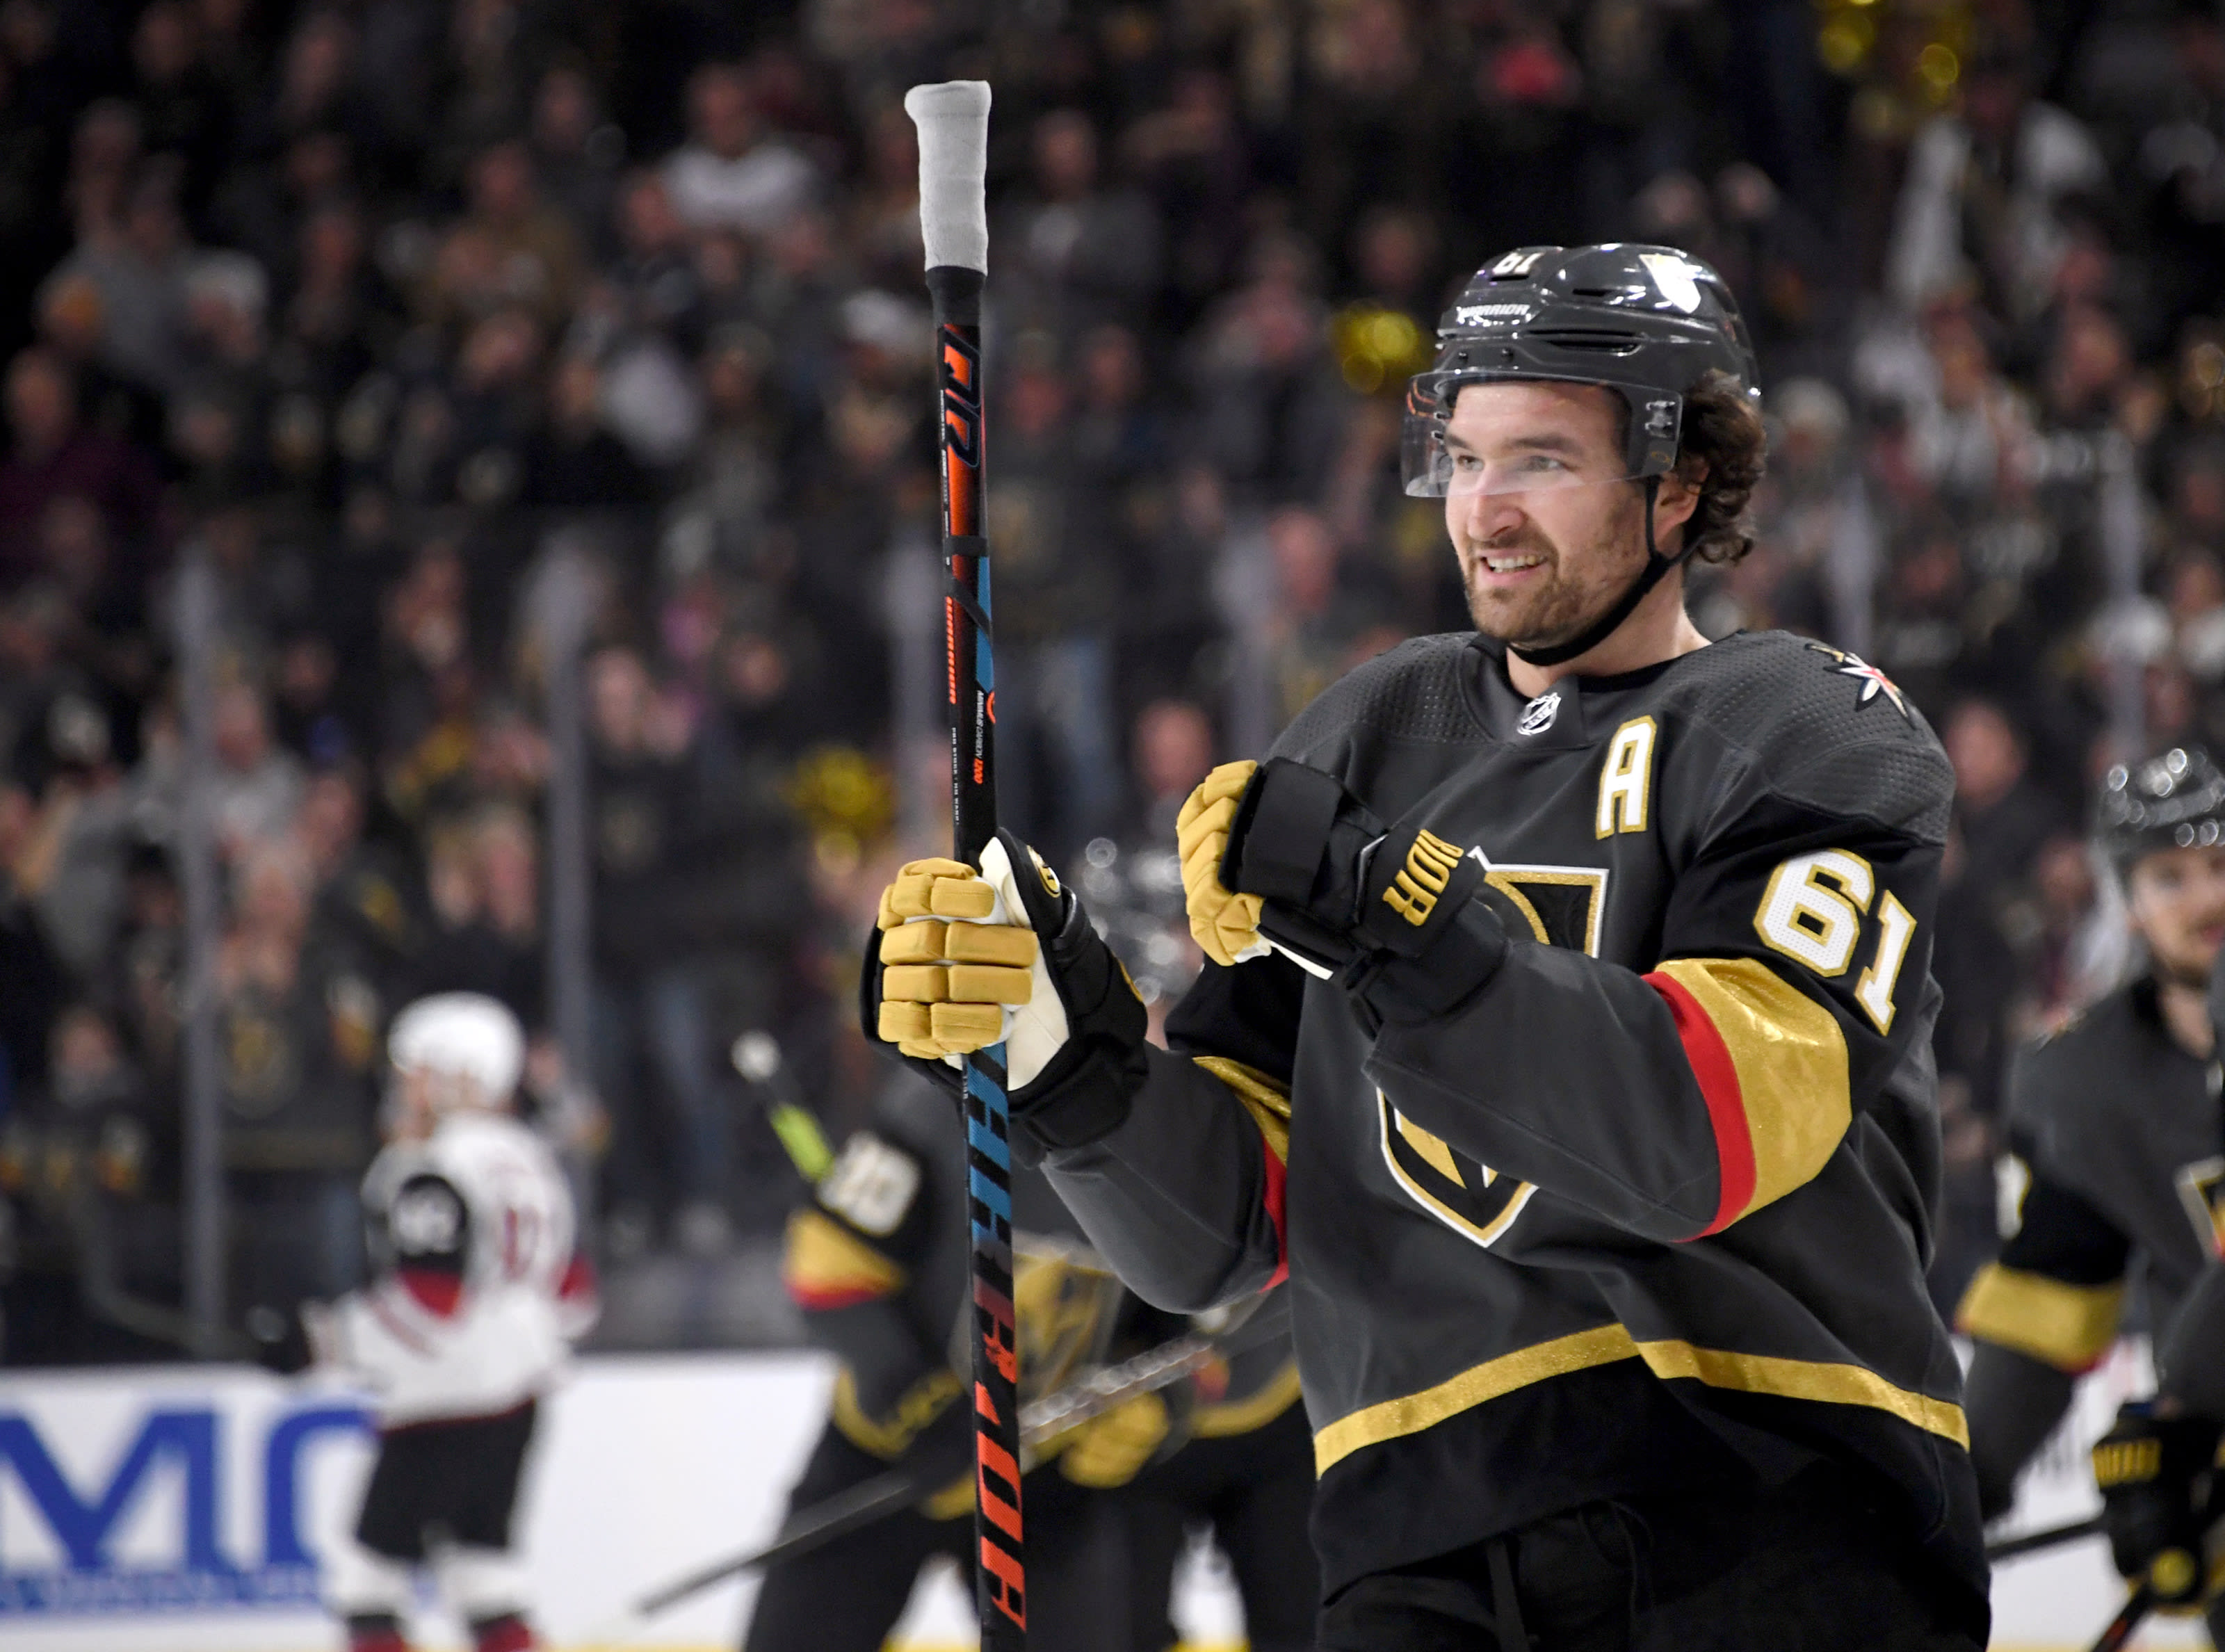 Mark Stone #61 of the Vegas Golden Knights celebrates after scoring his second first-period goal against the Arizona Coyotes.